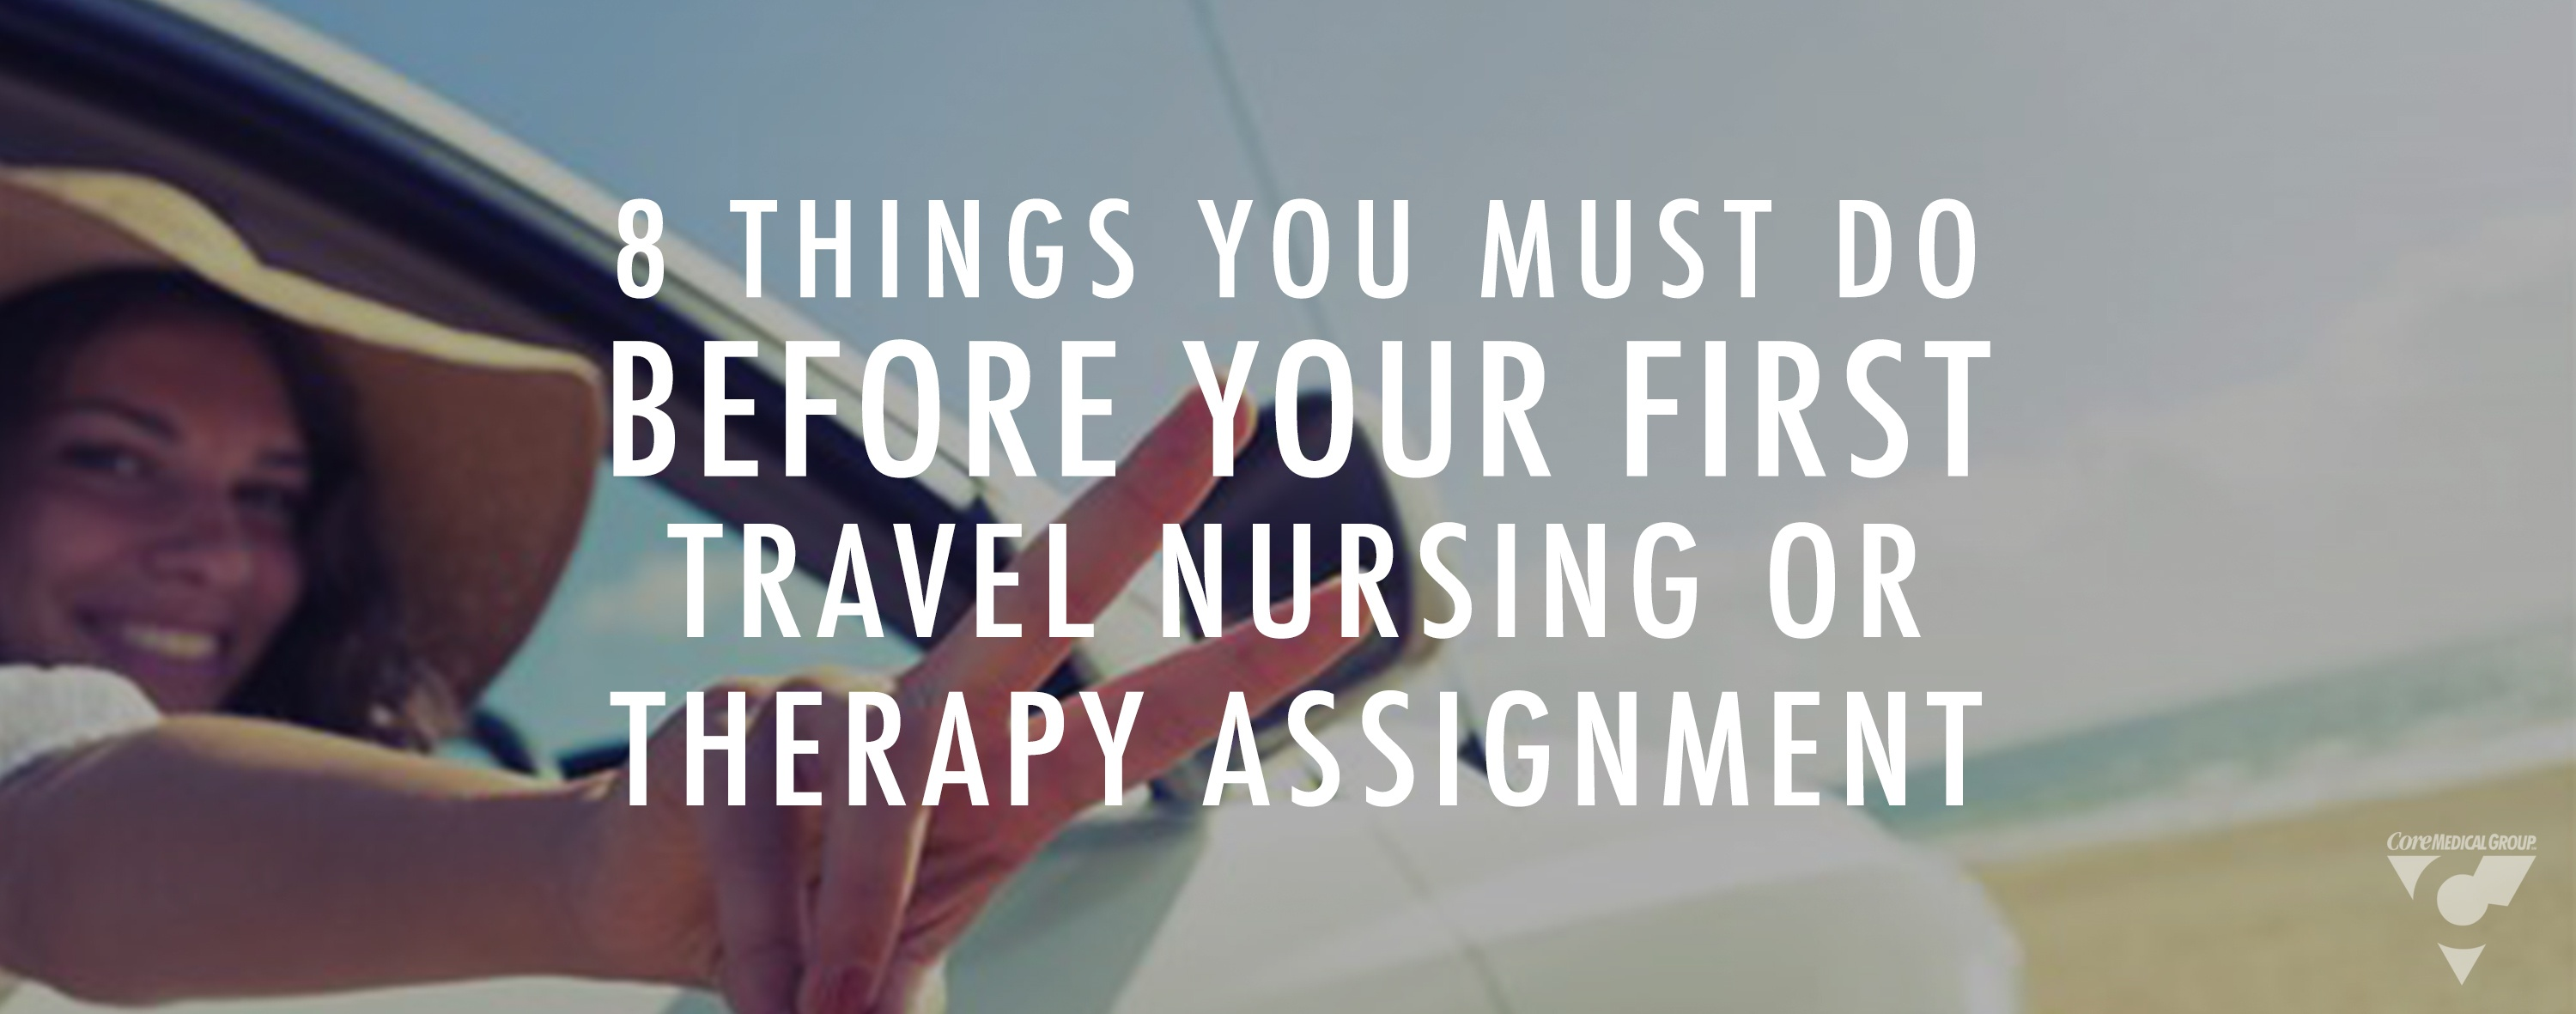 8 Things You Must Do Before Your First Travel Nursing Or Therapy Assignment